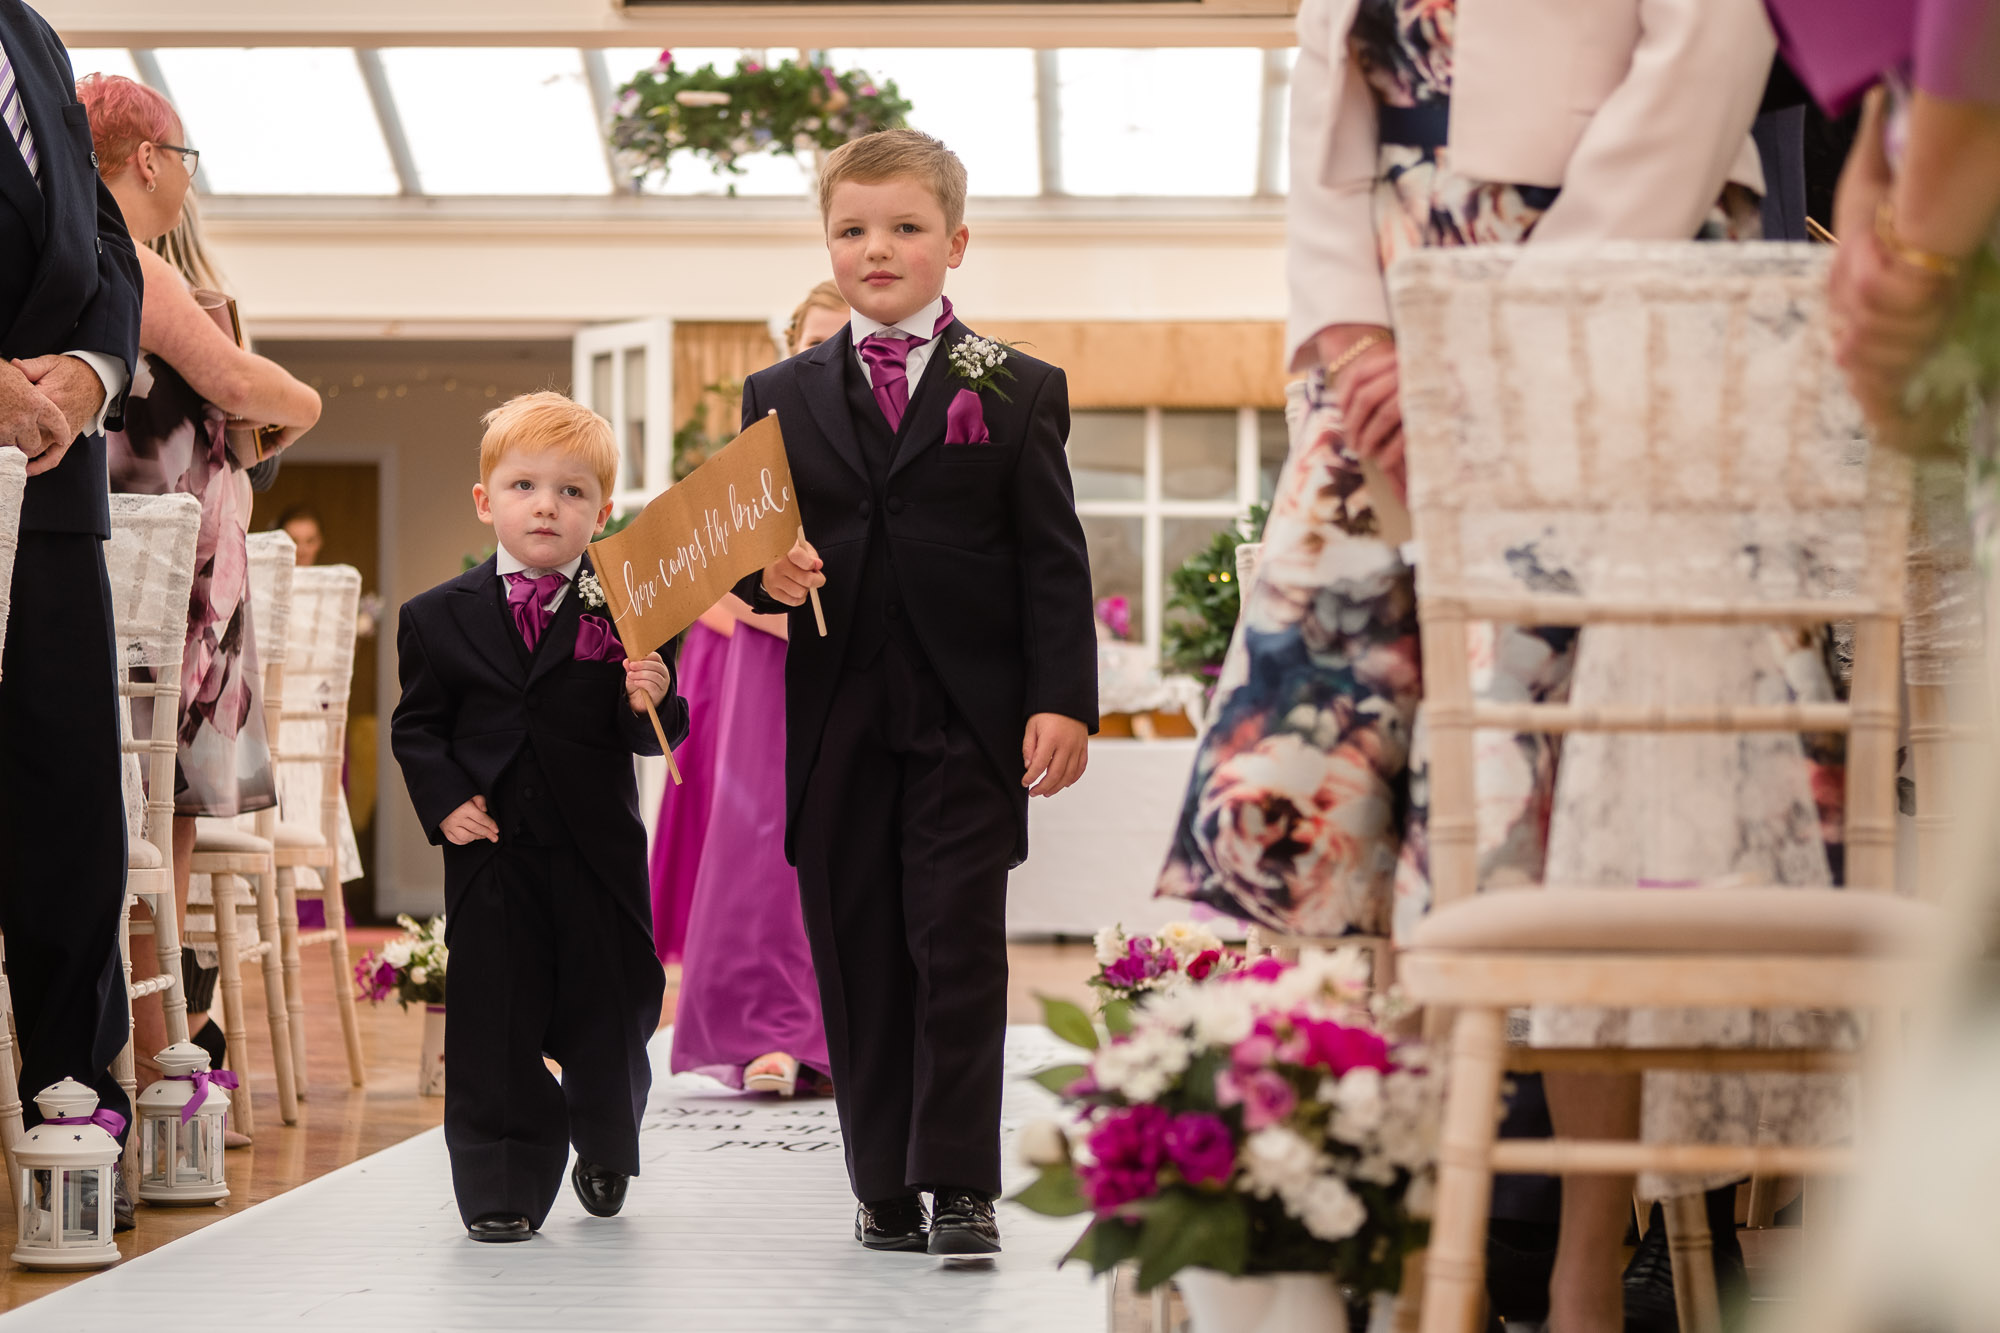 paige boys walking down the aisle at the mere court hotel